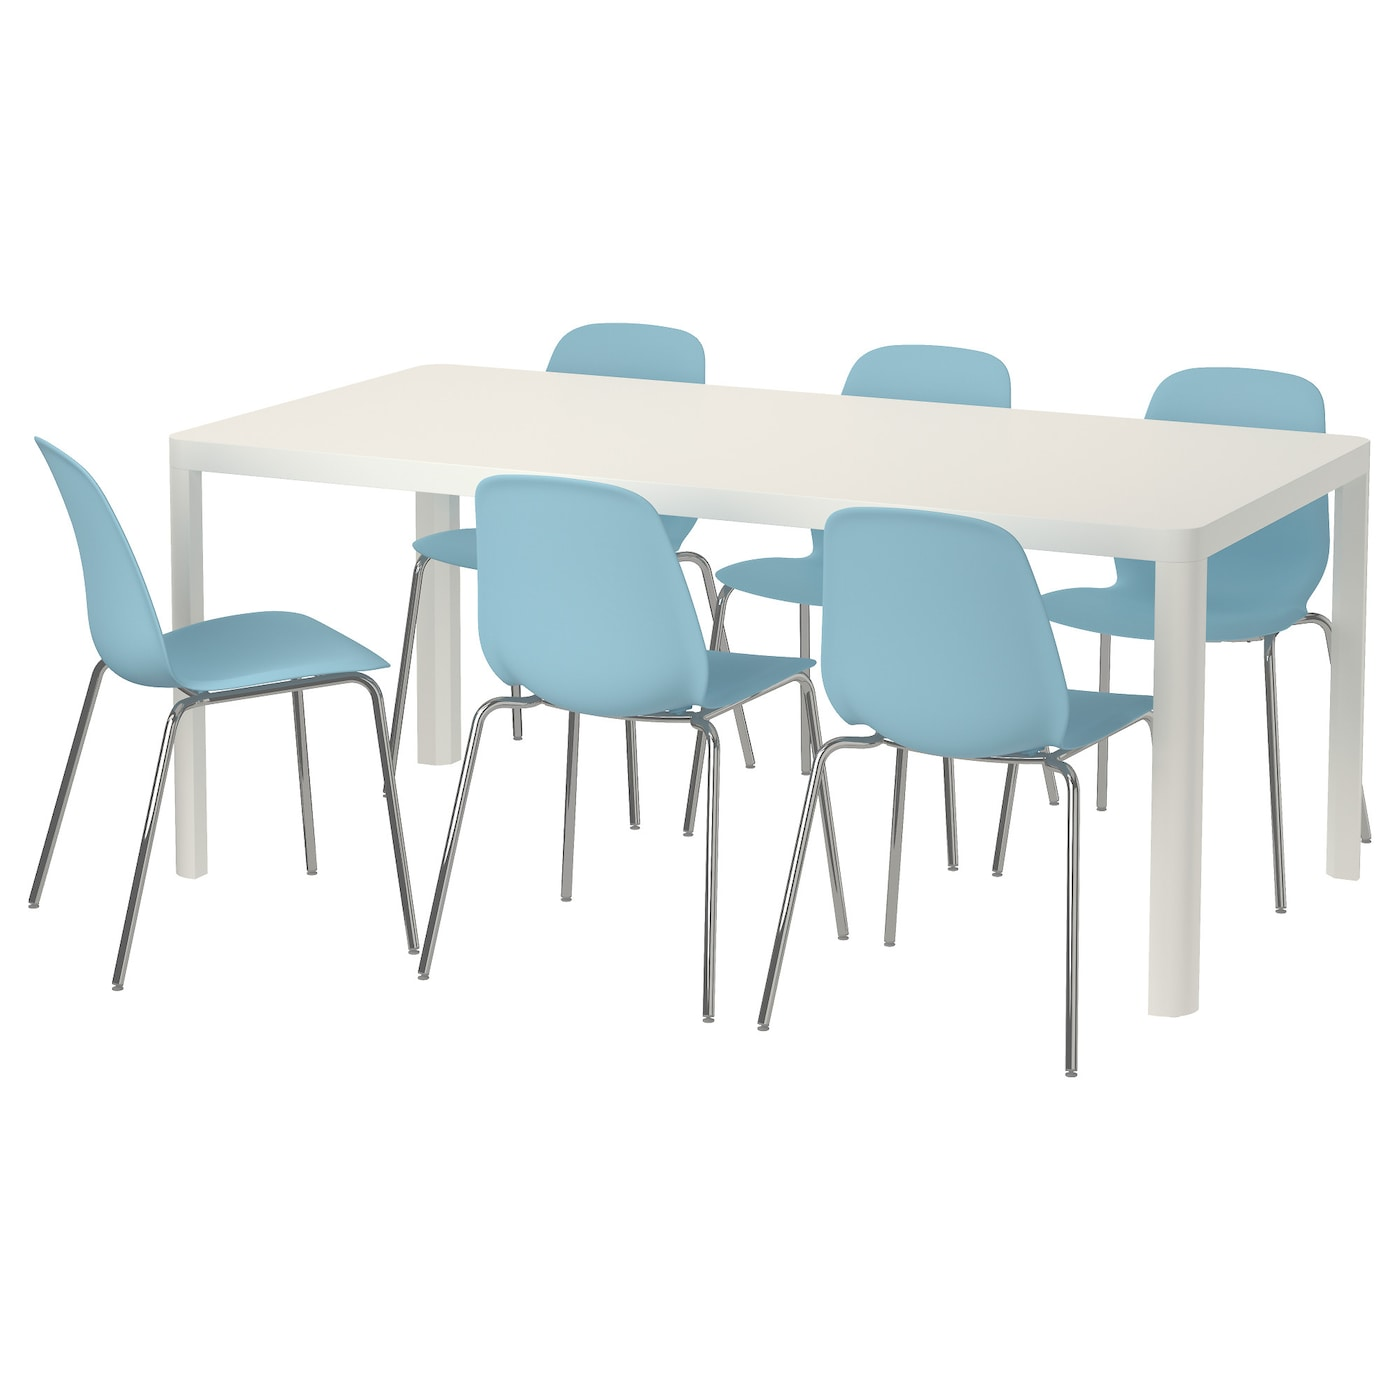 IKEA LEIFARNE/TINGBY table and 6 chairs